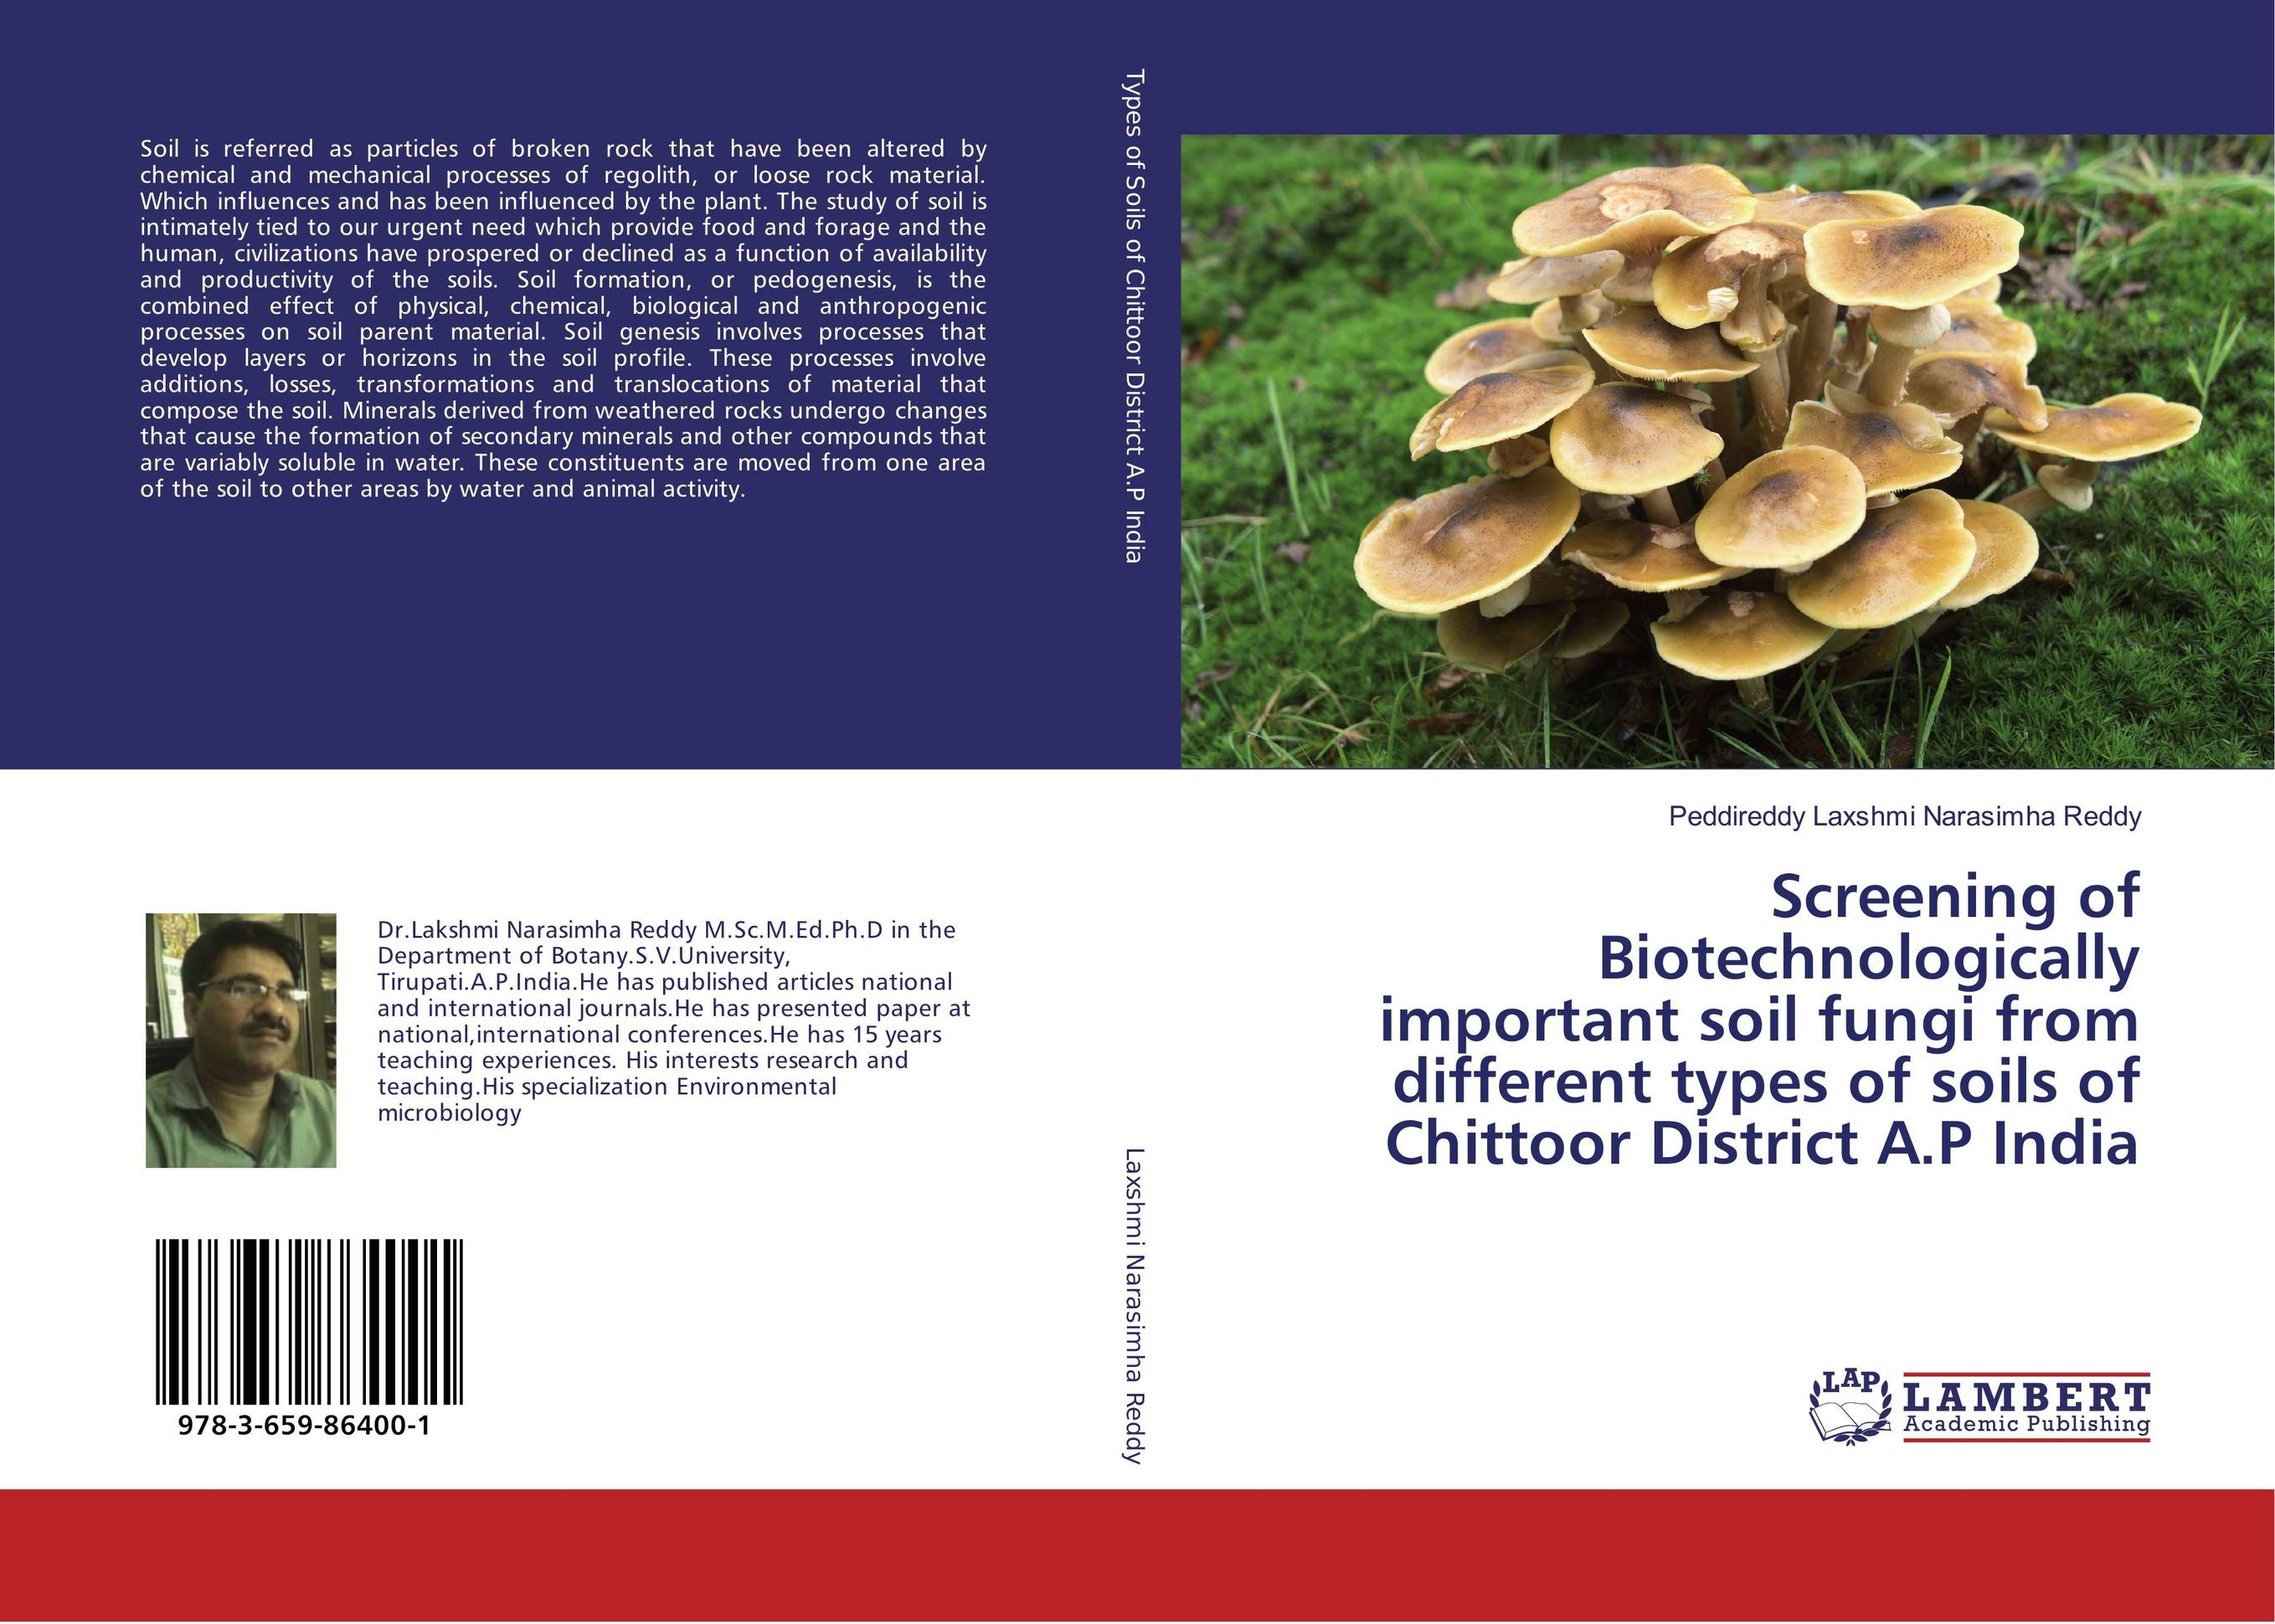 Screening of Biotechnologically important soil fungi from different types of soils of Chittoor District A.P India production and purification of laccase from white rot fungi